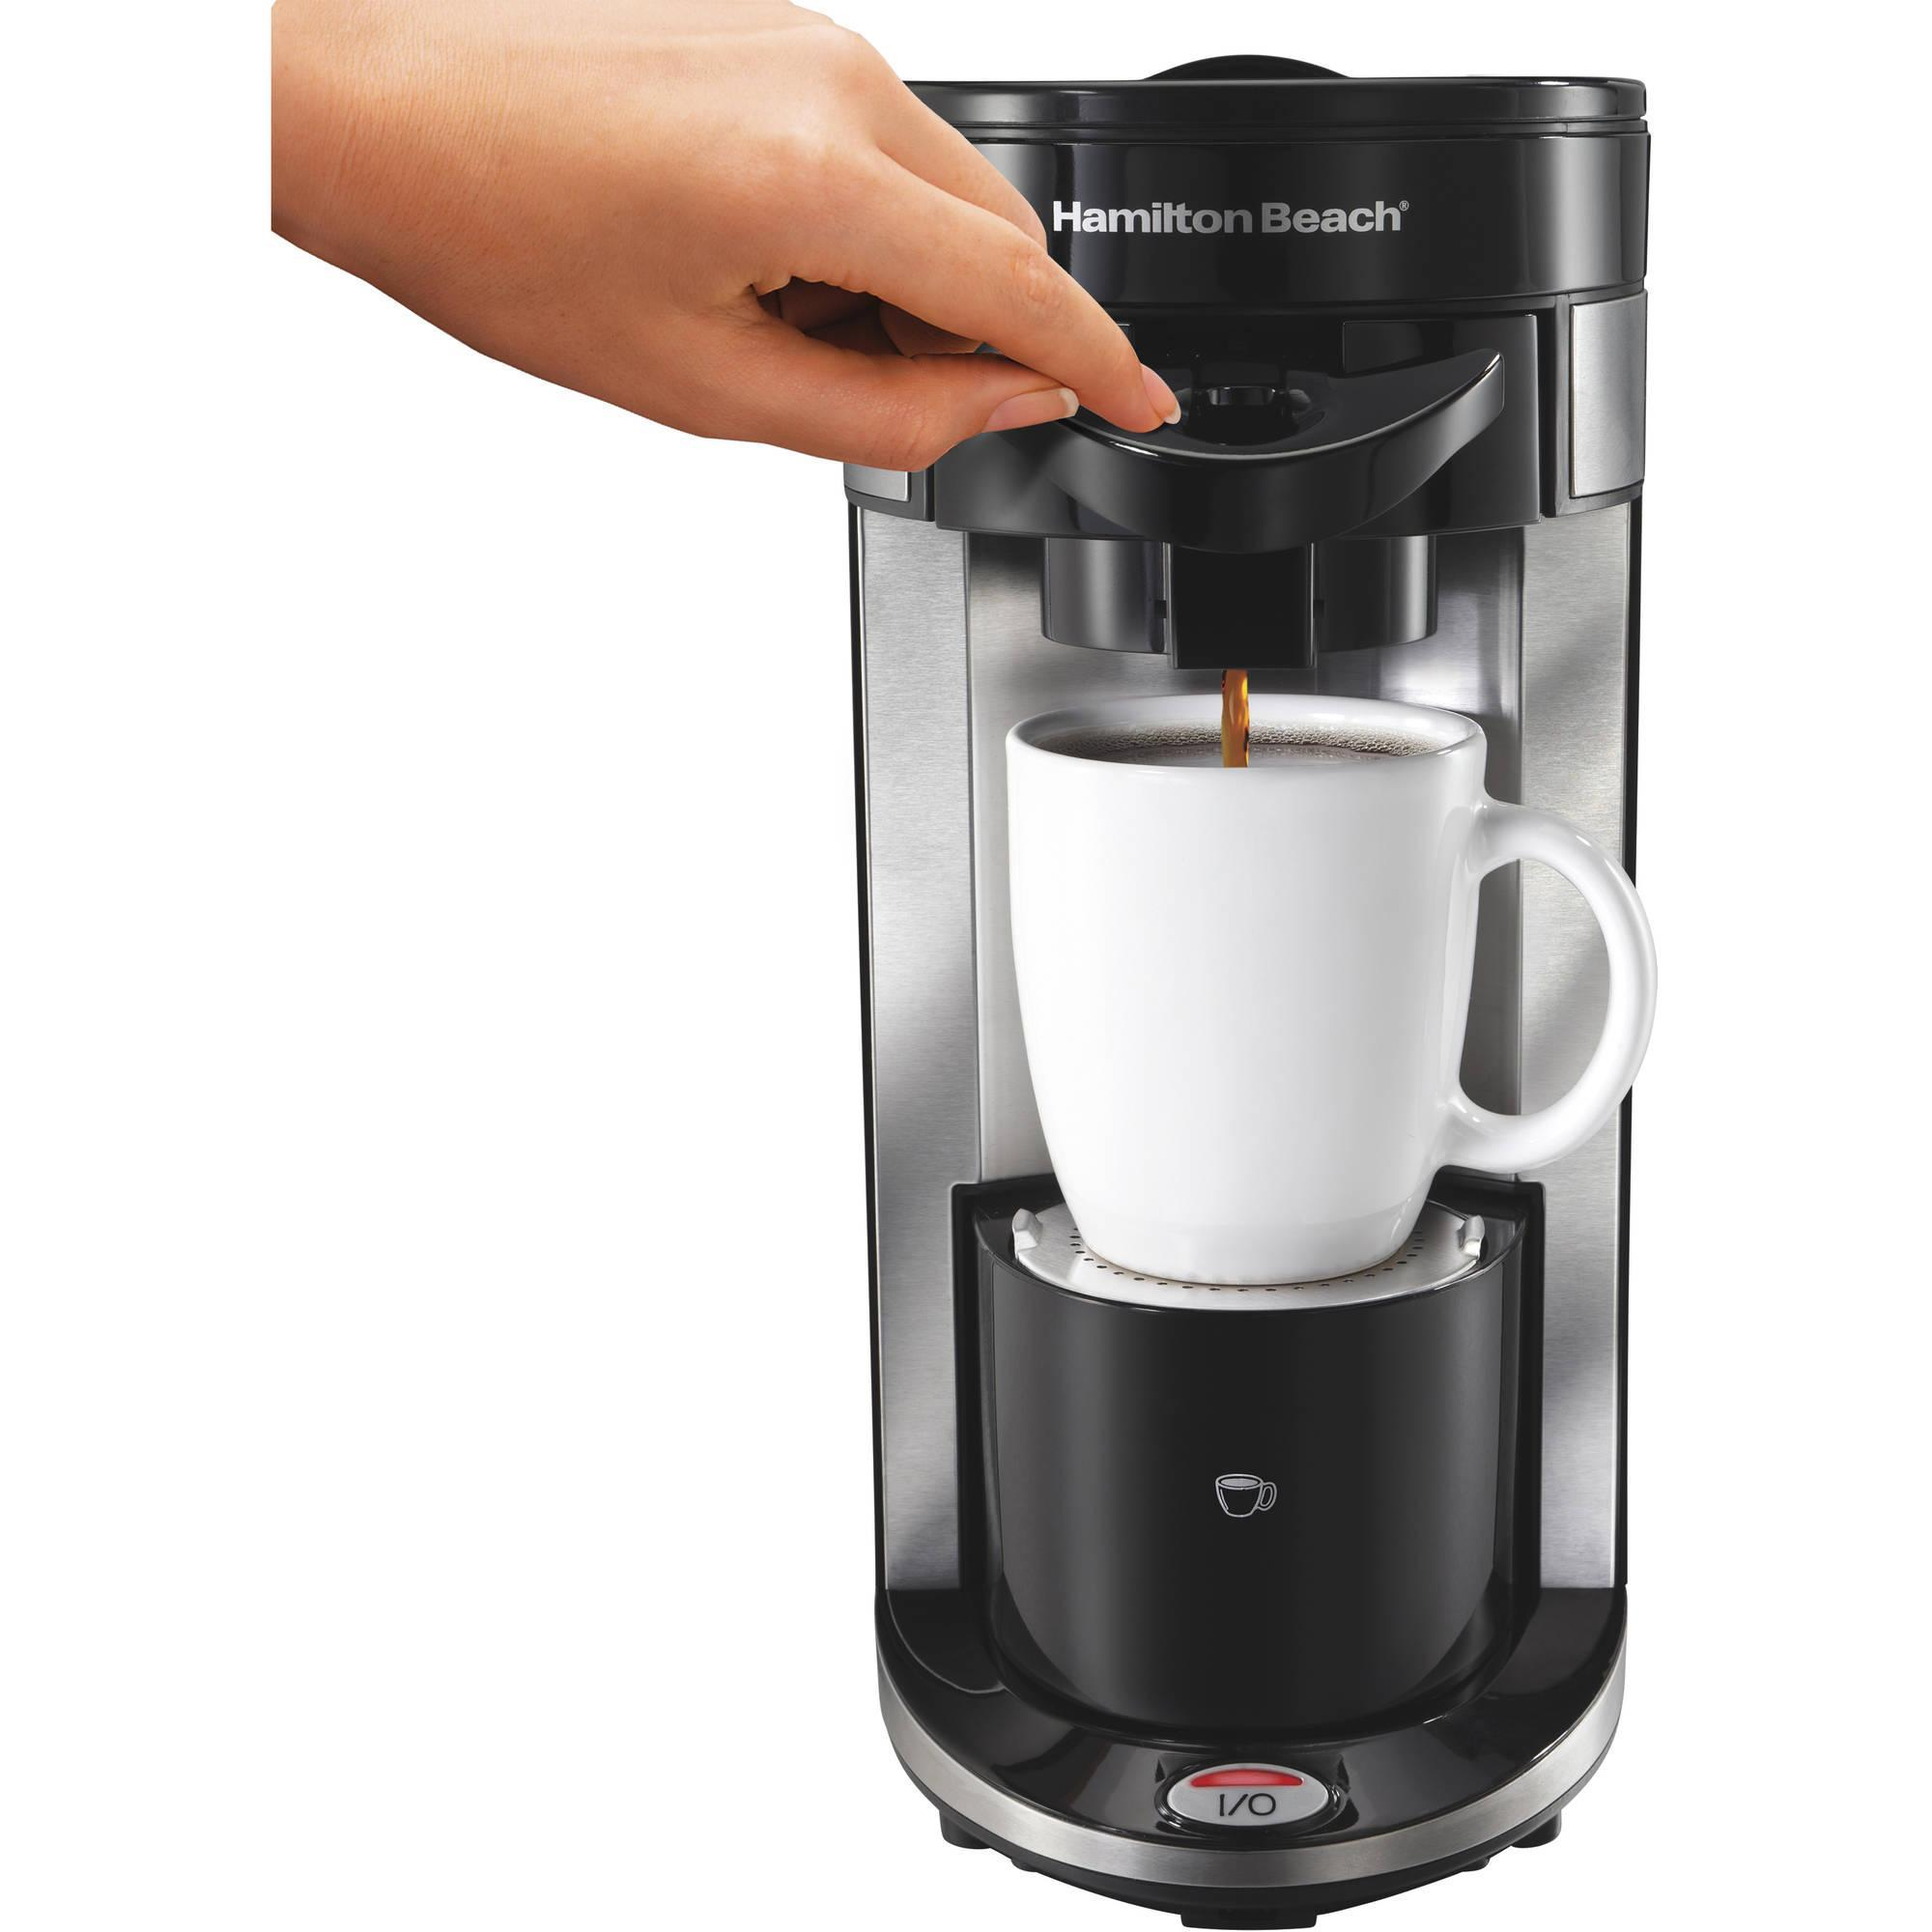 Hamilton Beach Flex Brew Single Serve Coffeemaker @ Bon-Ton